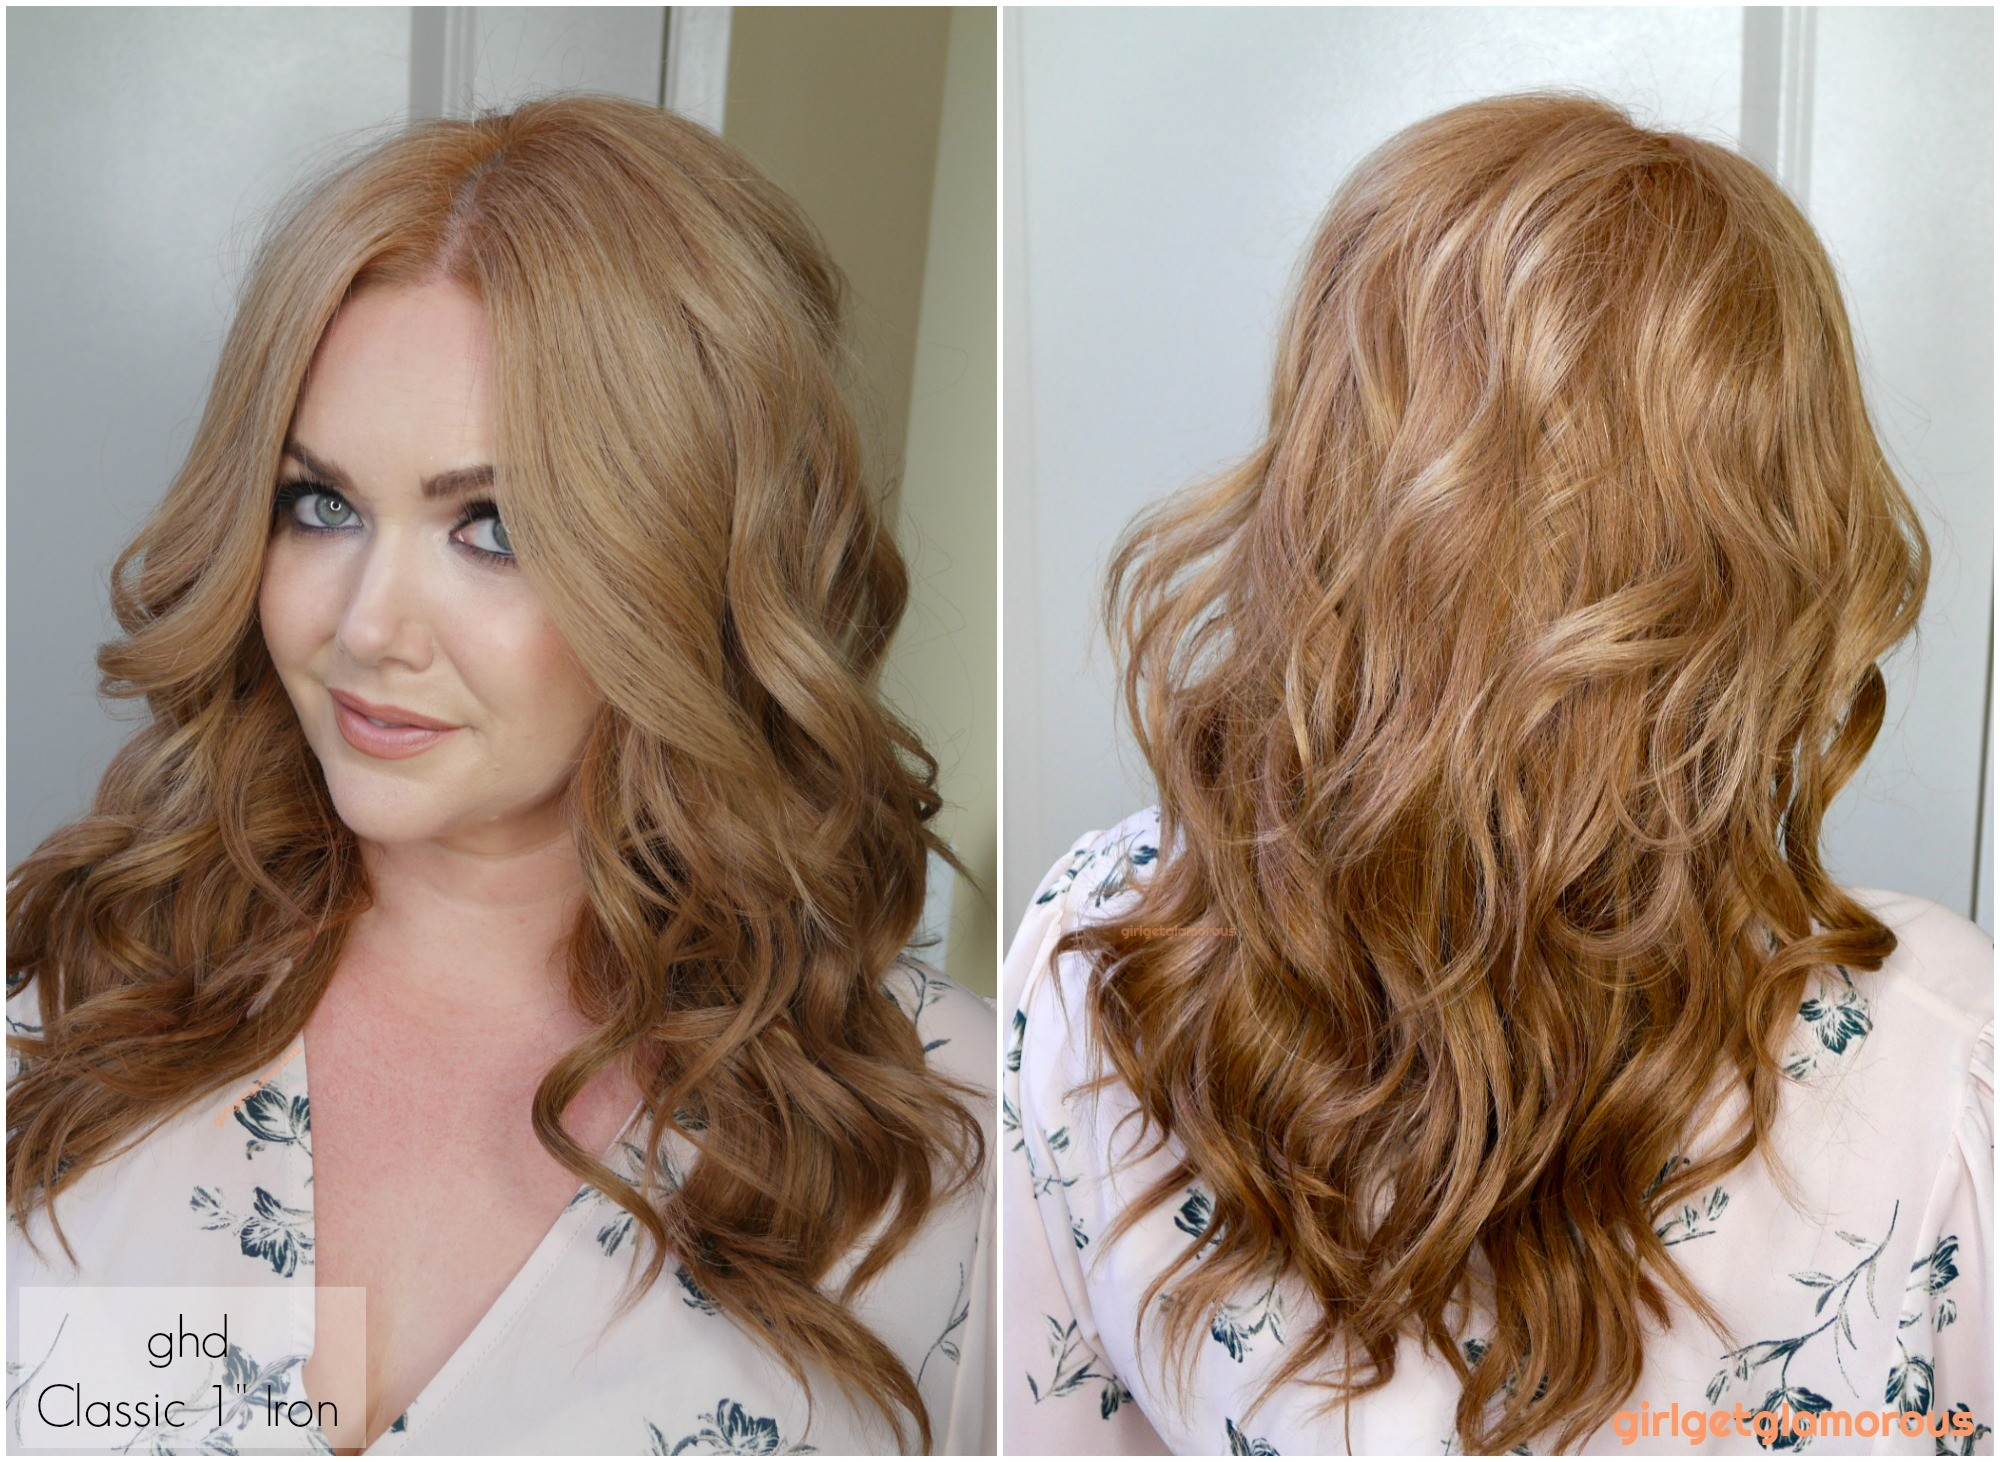 """ghd classic 1 1"""" curler curl results before after beach curls waves beauty blog best curler for my hair blogger"""